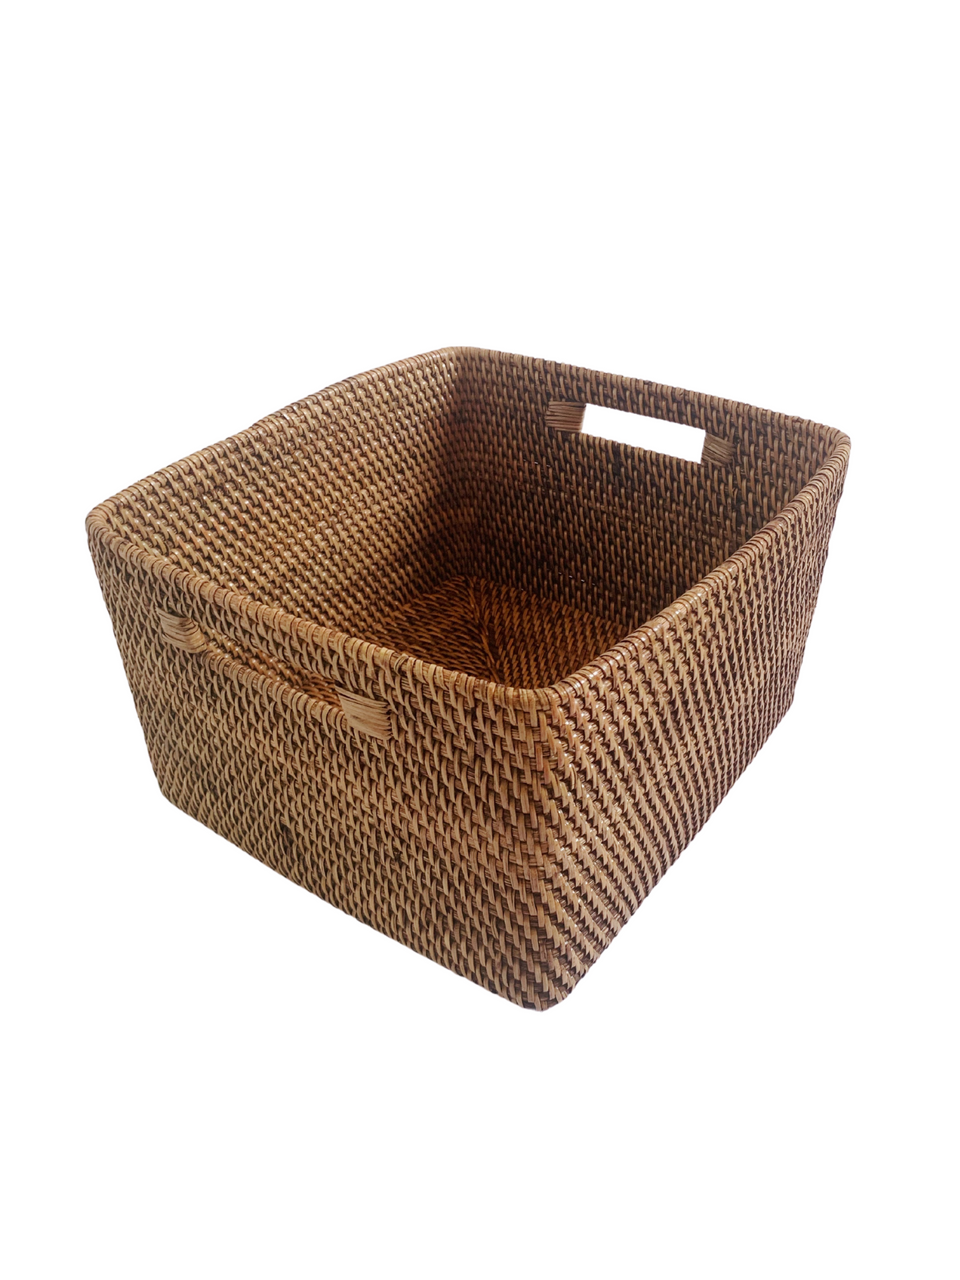 collections/38-01-02__Thomas_May-Rattan_Storage_Basket-Large_Antique_03.png